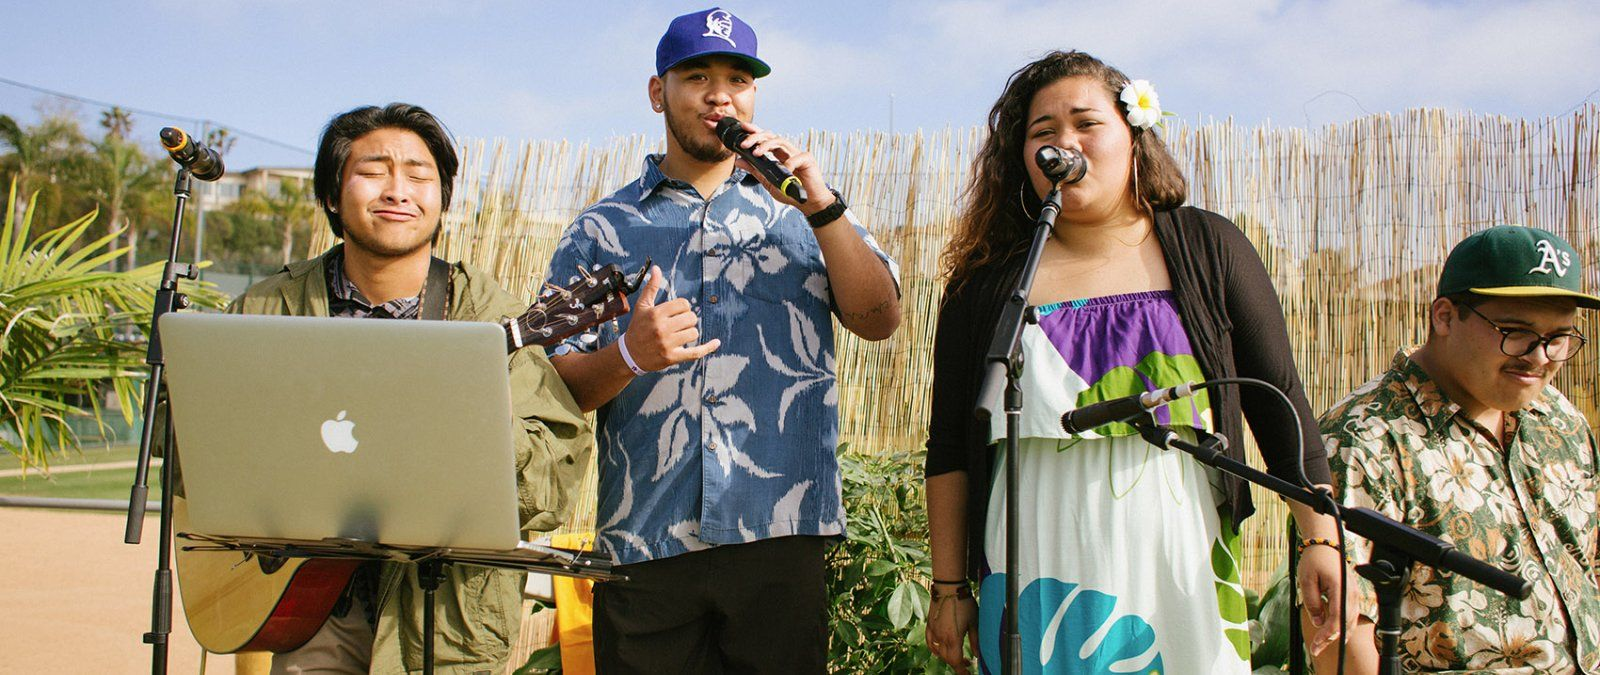 Members of the Hui O'Hawaii club perform native Hawaiian songs.